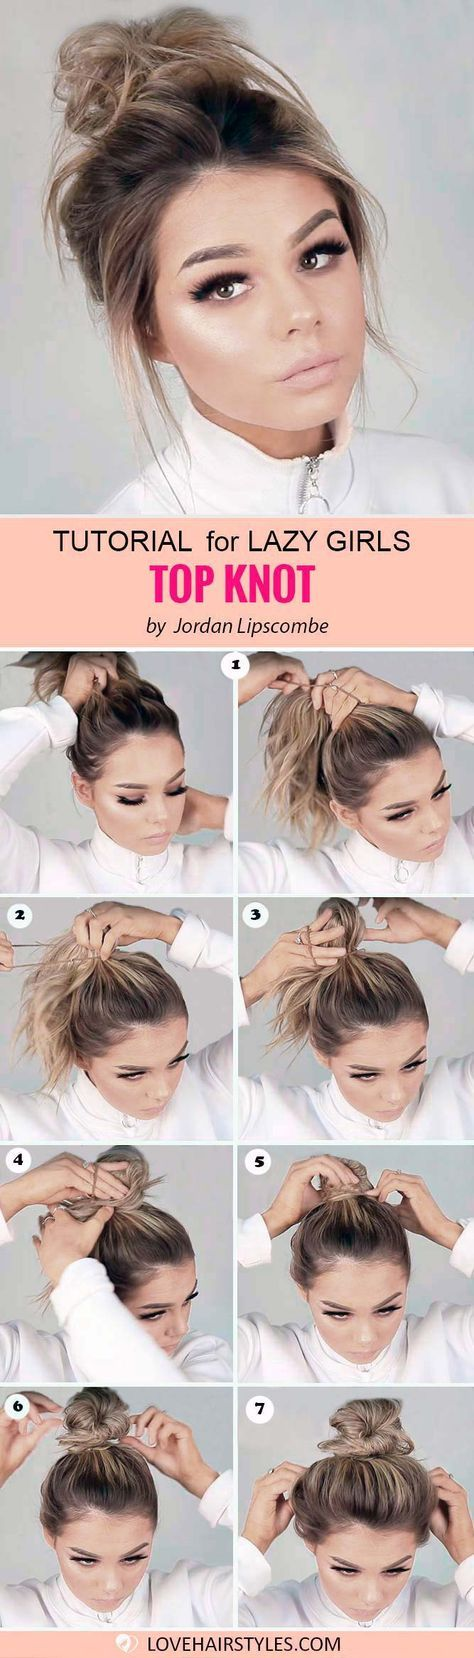 10 Perfectly Easy Hairstyles For Medium Hair Lovehairstyles Medium Hair Styles Easy Hairstyles Easy Hairstyles For Medium Hair